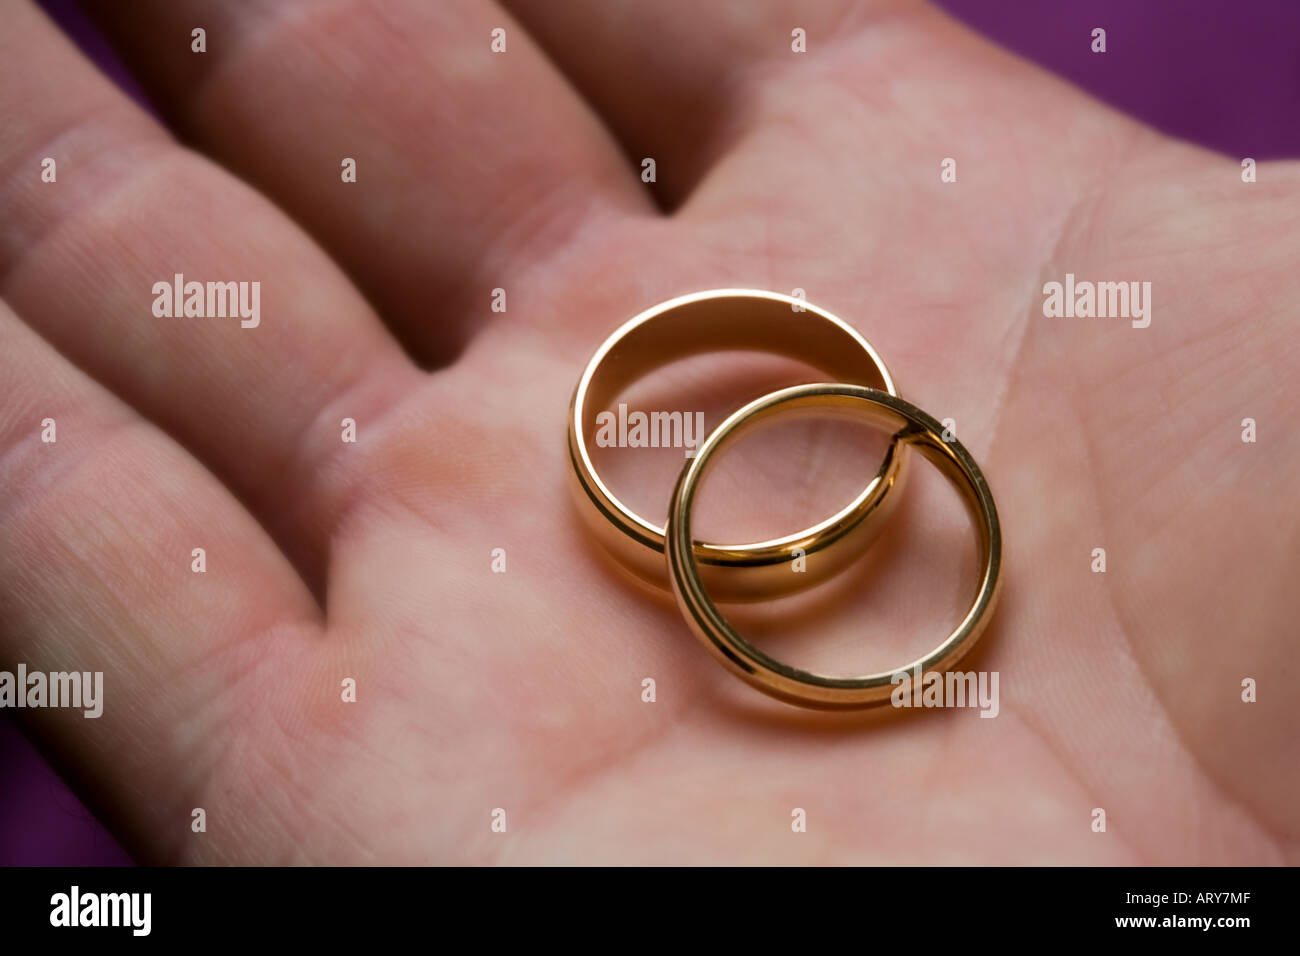 His and Her Wedding rings in palm of hand Stock Photo: 9228430 - Alamy